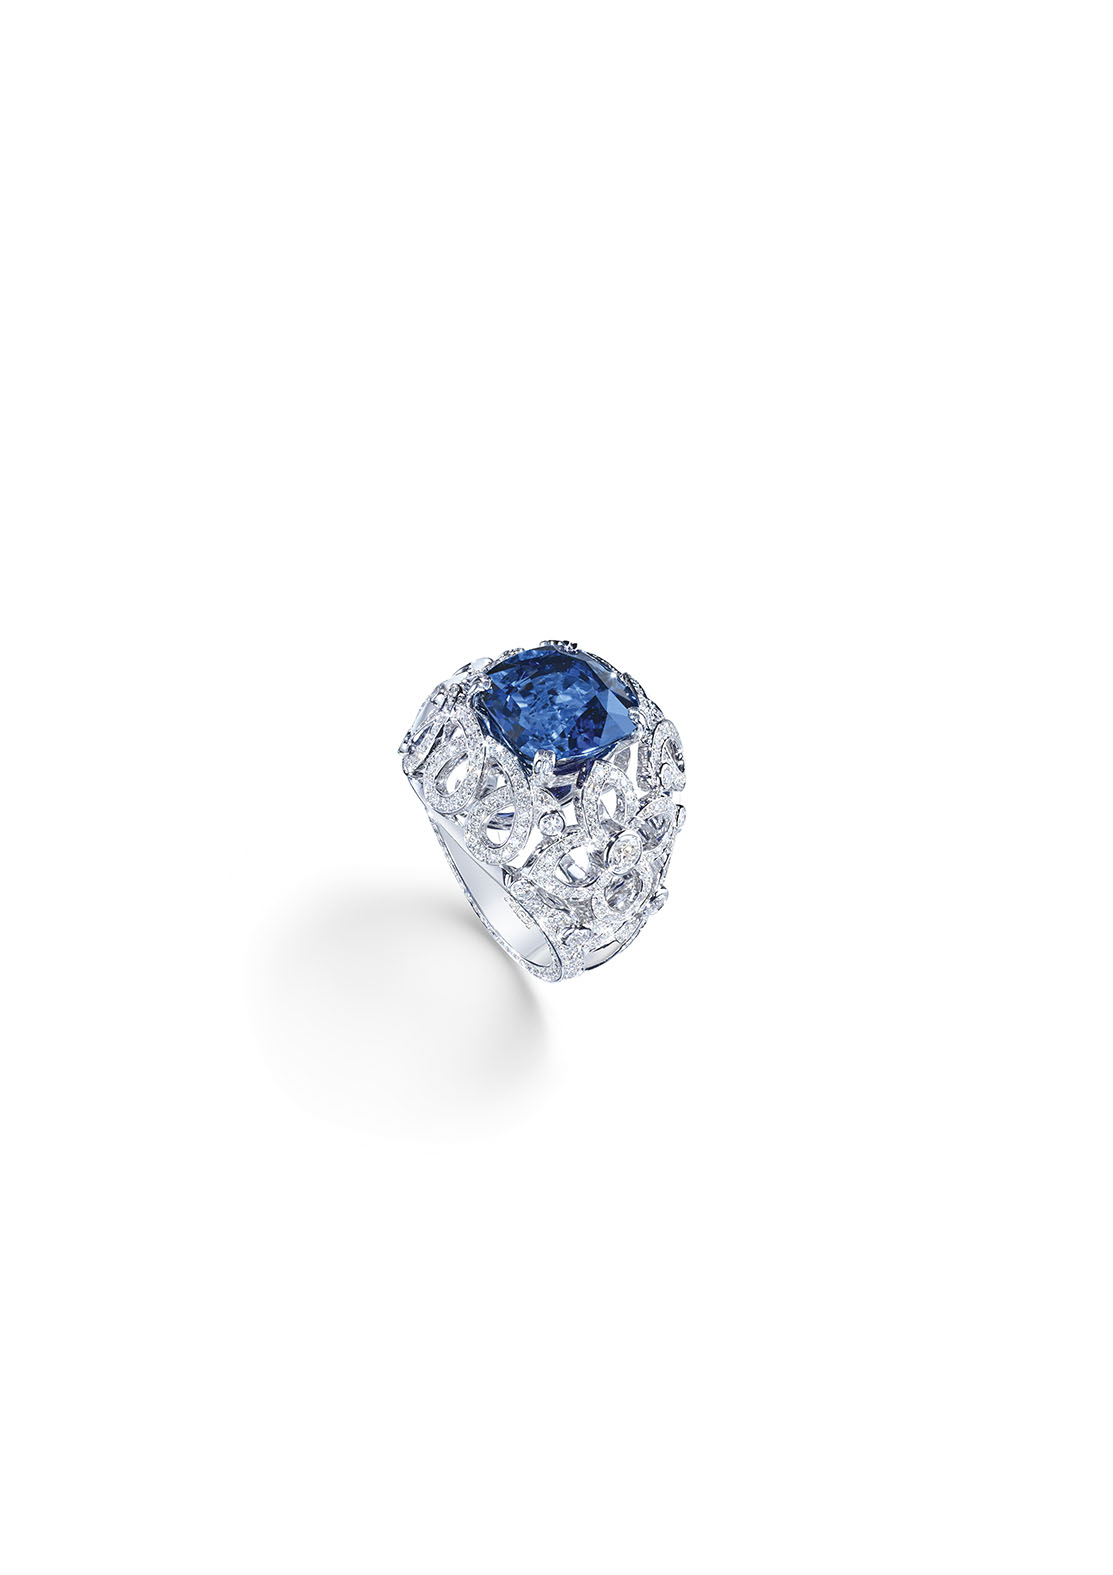 Ring in 18K white gold set with 1 cushion-cut blue sapphire (approx. 7.04 cts) and 386 brilliant-cut diamonds (approx. 1.96 cts).